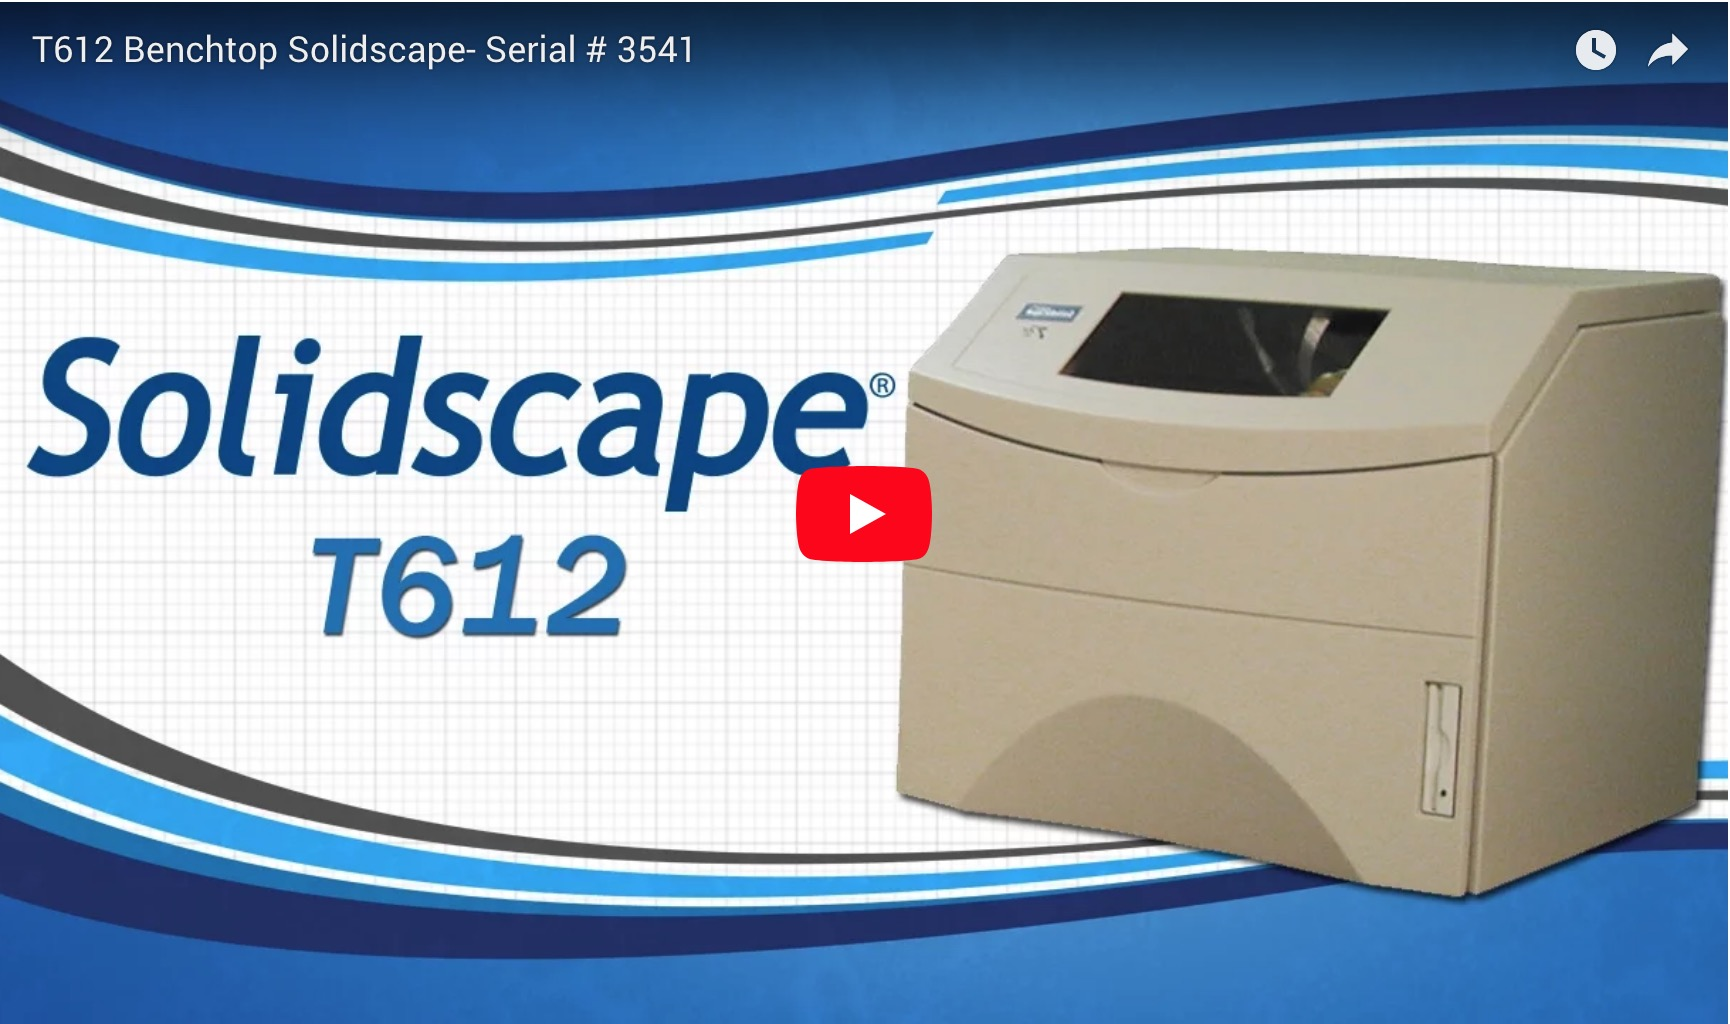 T612 Benchtop Solidscape - Serial # 3541